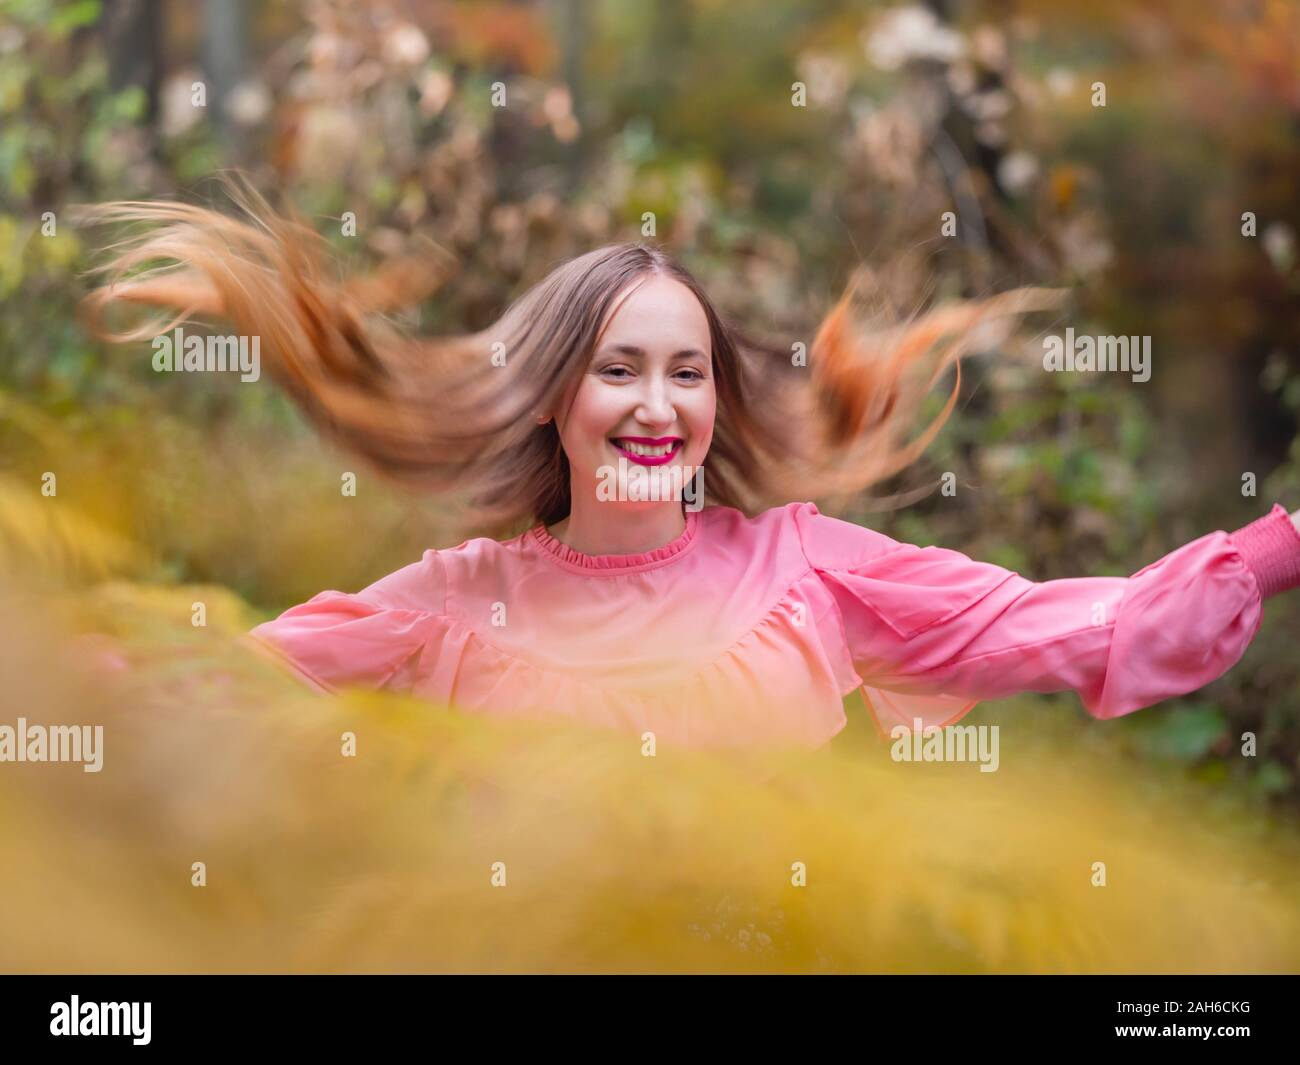 Country-girl countrygirl in countryside flying her hair wide apart portrait isolated partially blurry for happiness Stock Photo